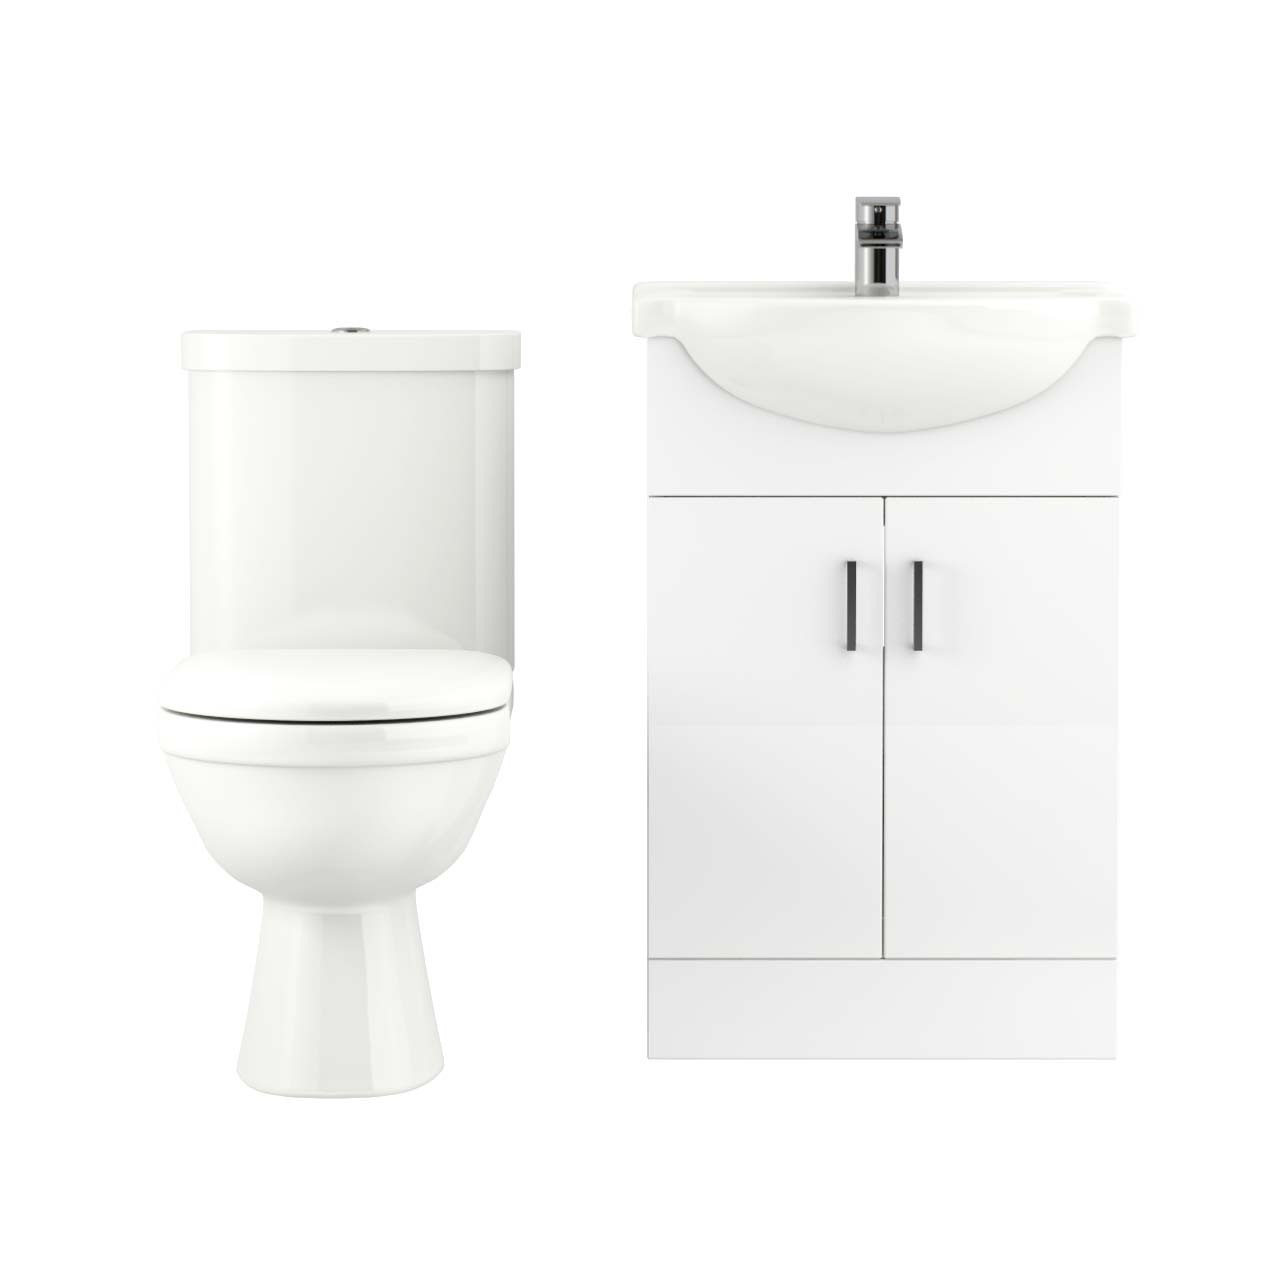 James 550mm Vanity Unit & Toilet Suite